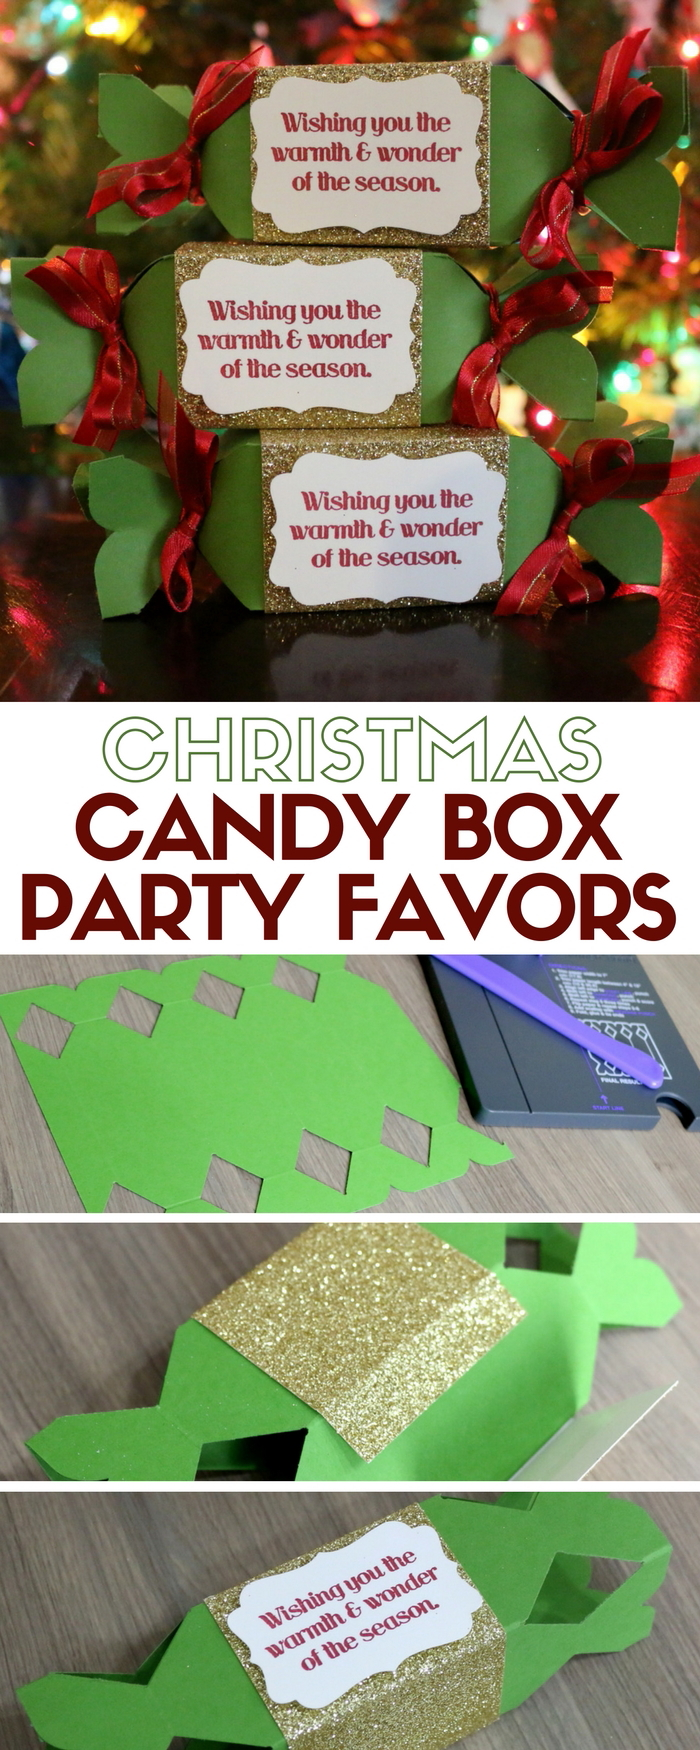 How To Make Christmas Candy Box Party Favors The Crafty